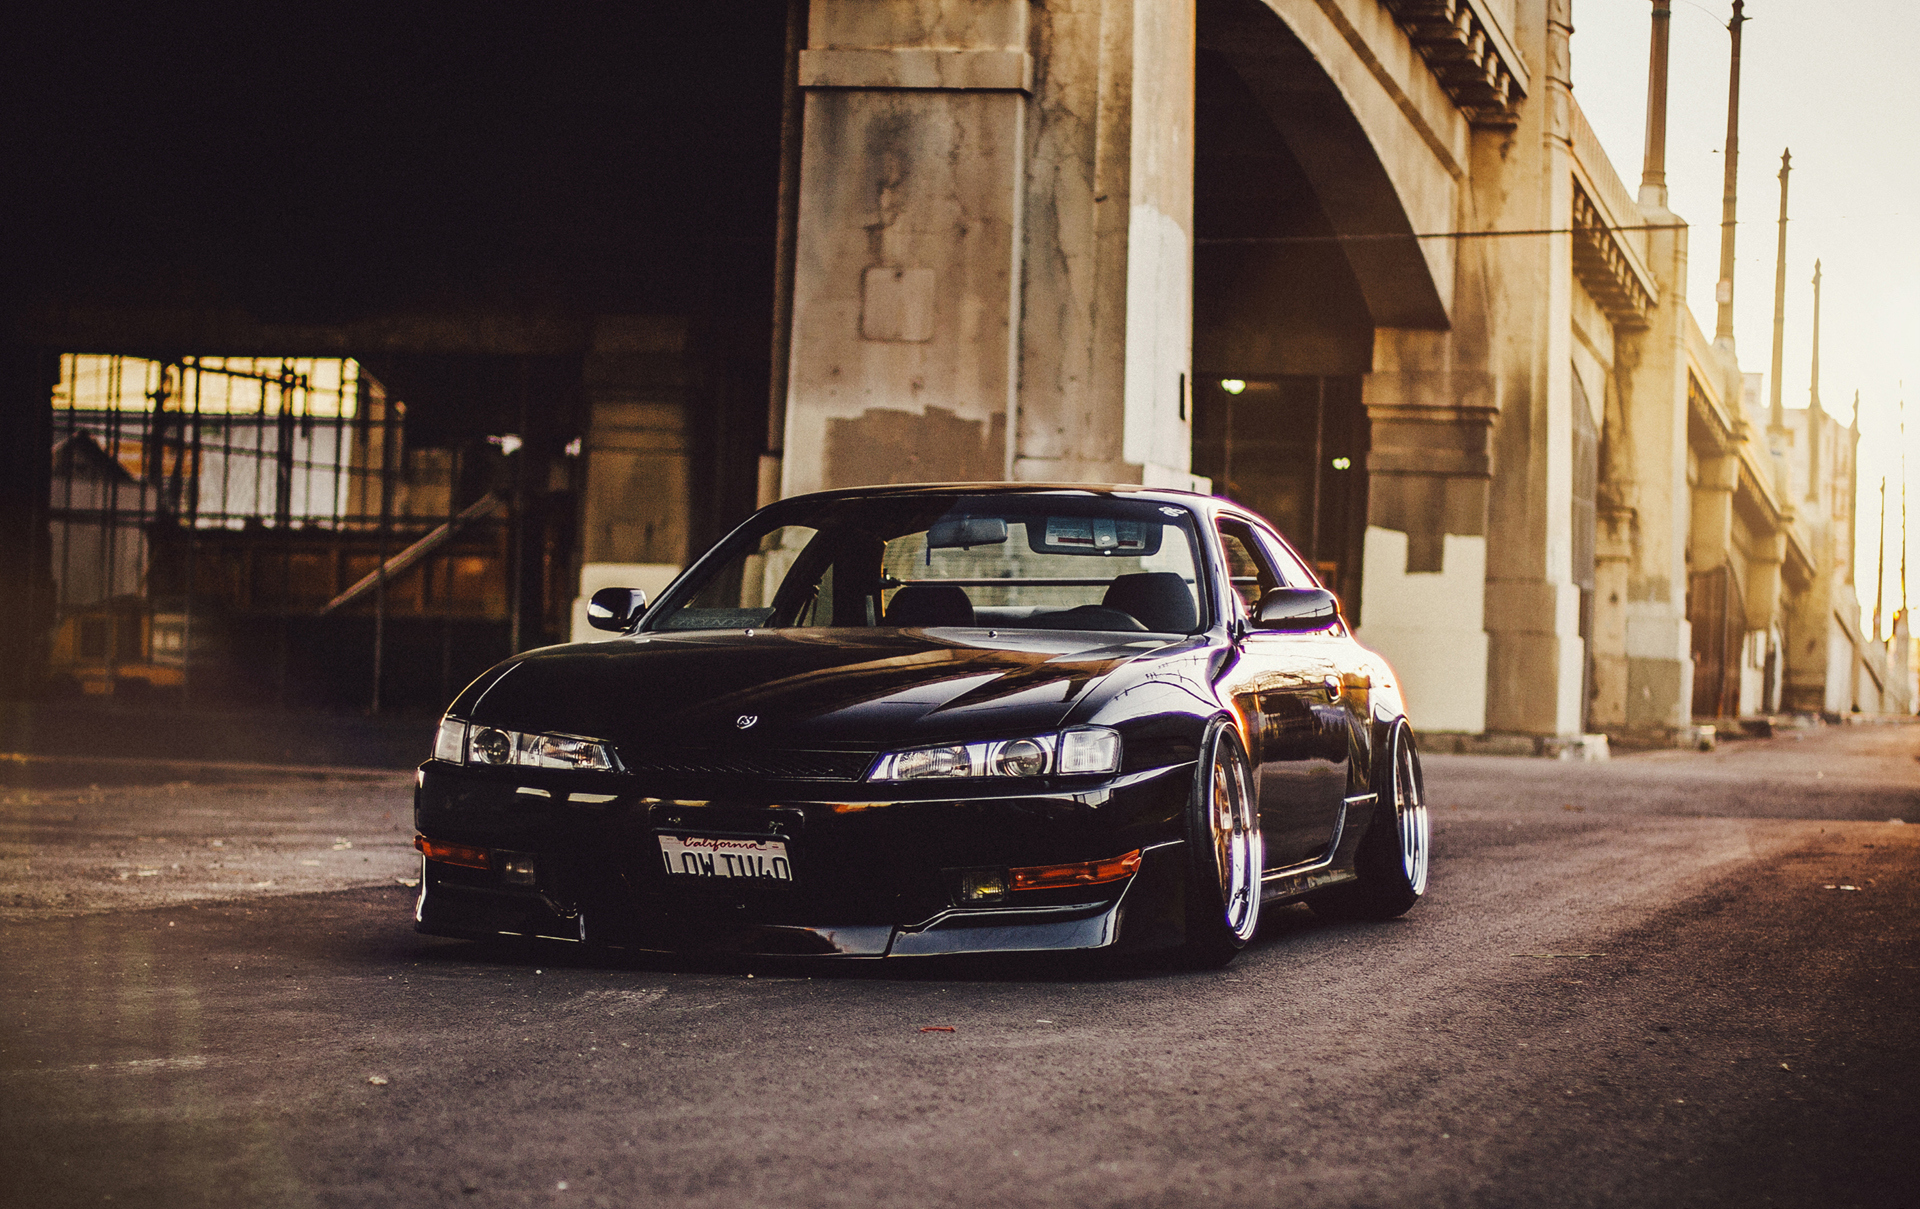 1920x1209 - Nissan Silvia S14 Wallpapers 5